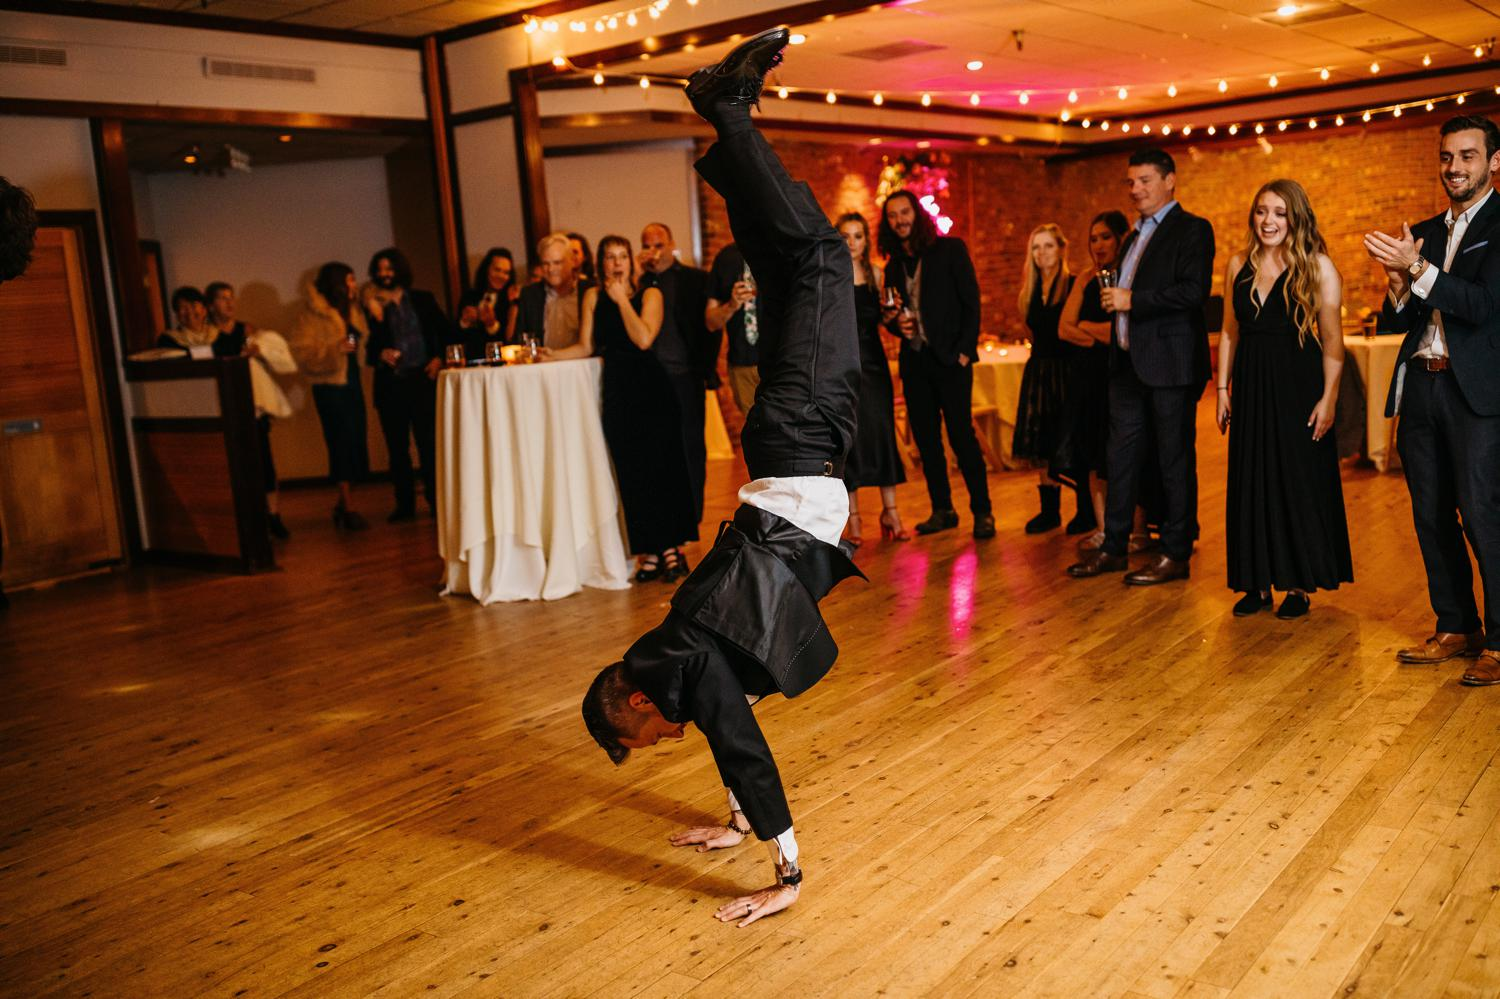 groom doing handstand at wedding reception